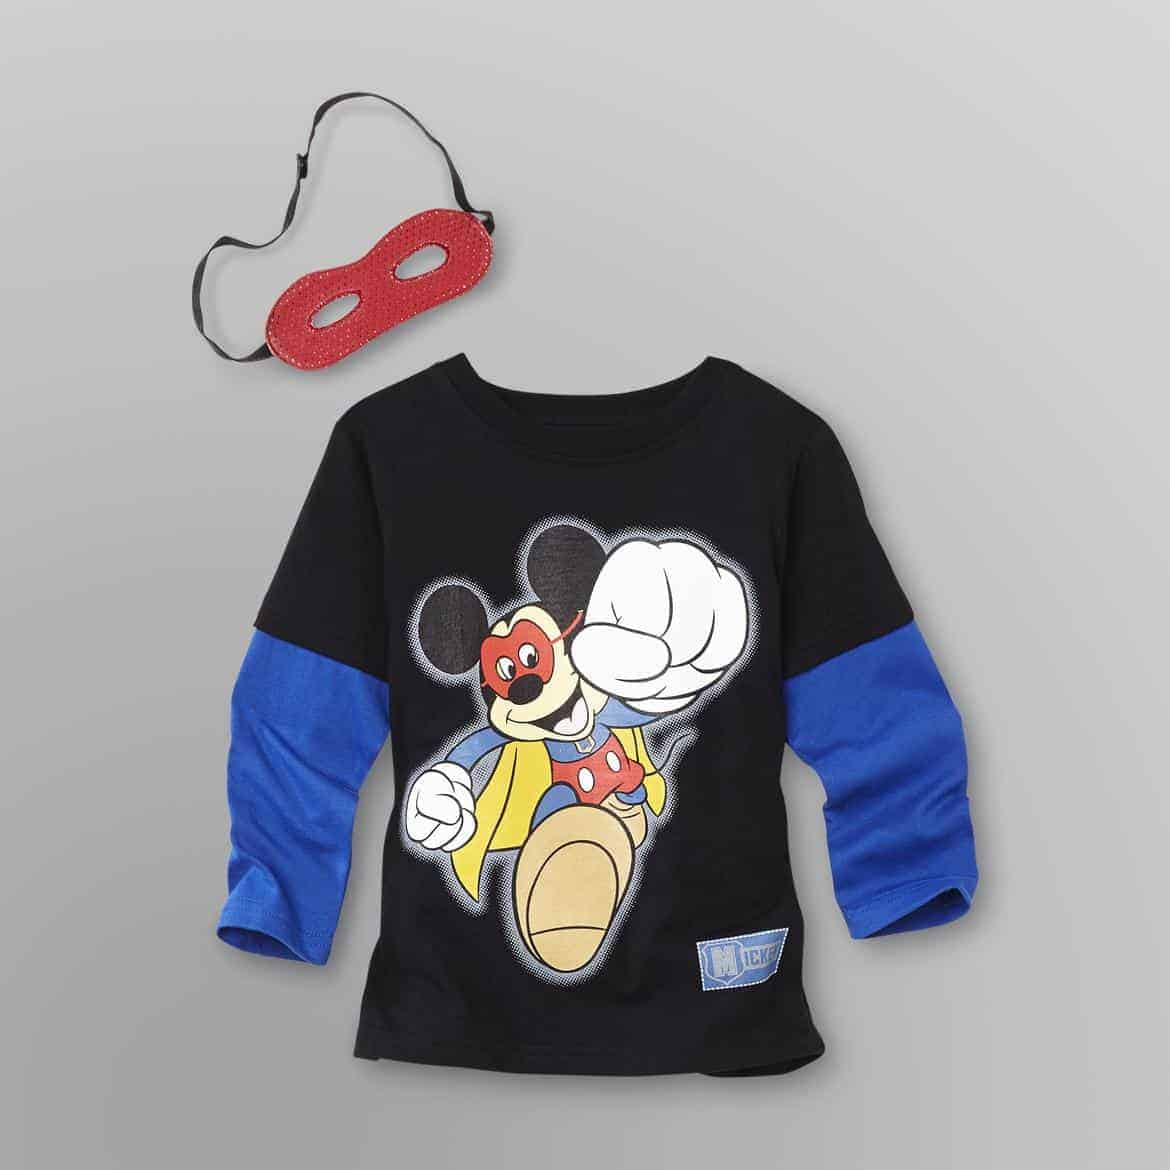 super mickey tee and mask